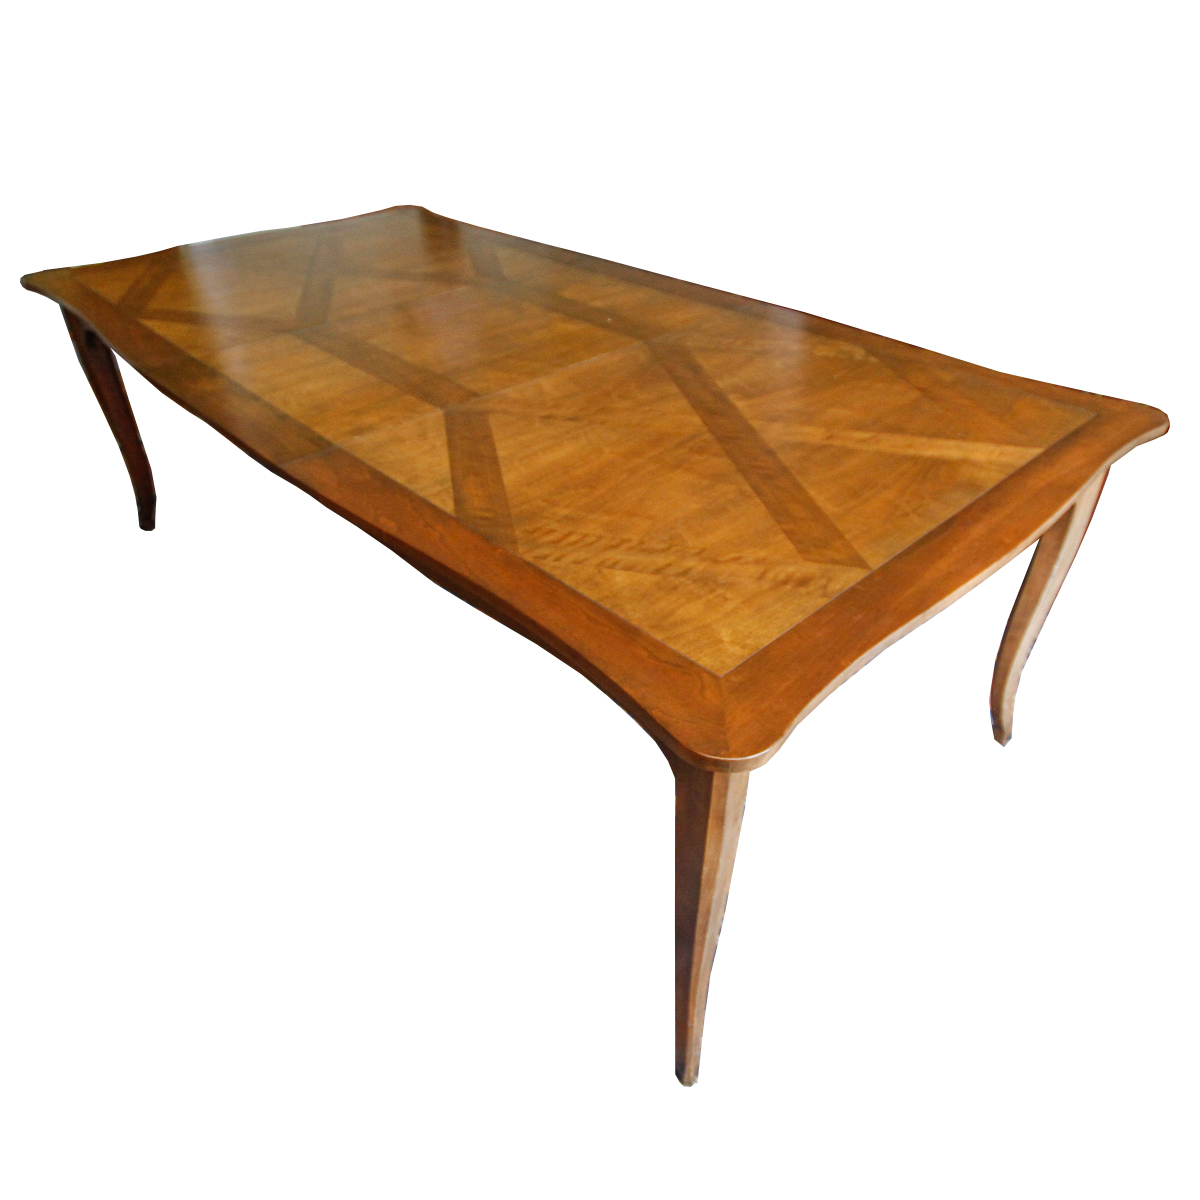 Baker Furniture Fruitwood Parquetry Dining Table EBTH